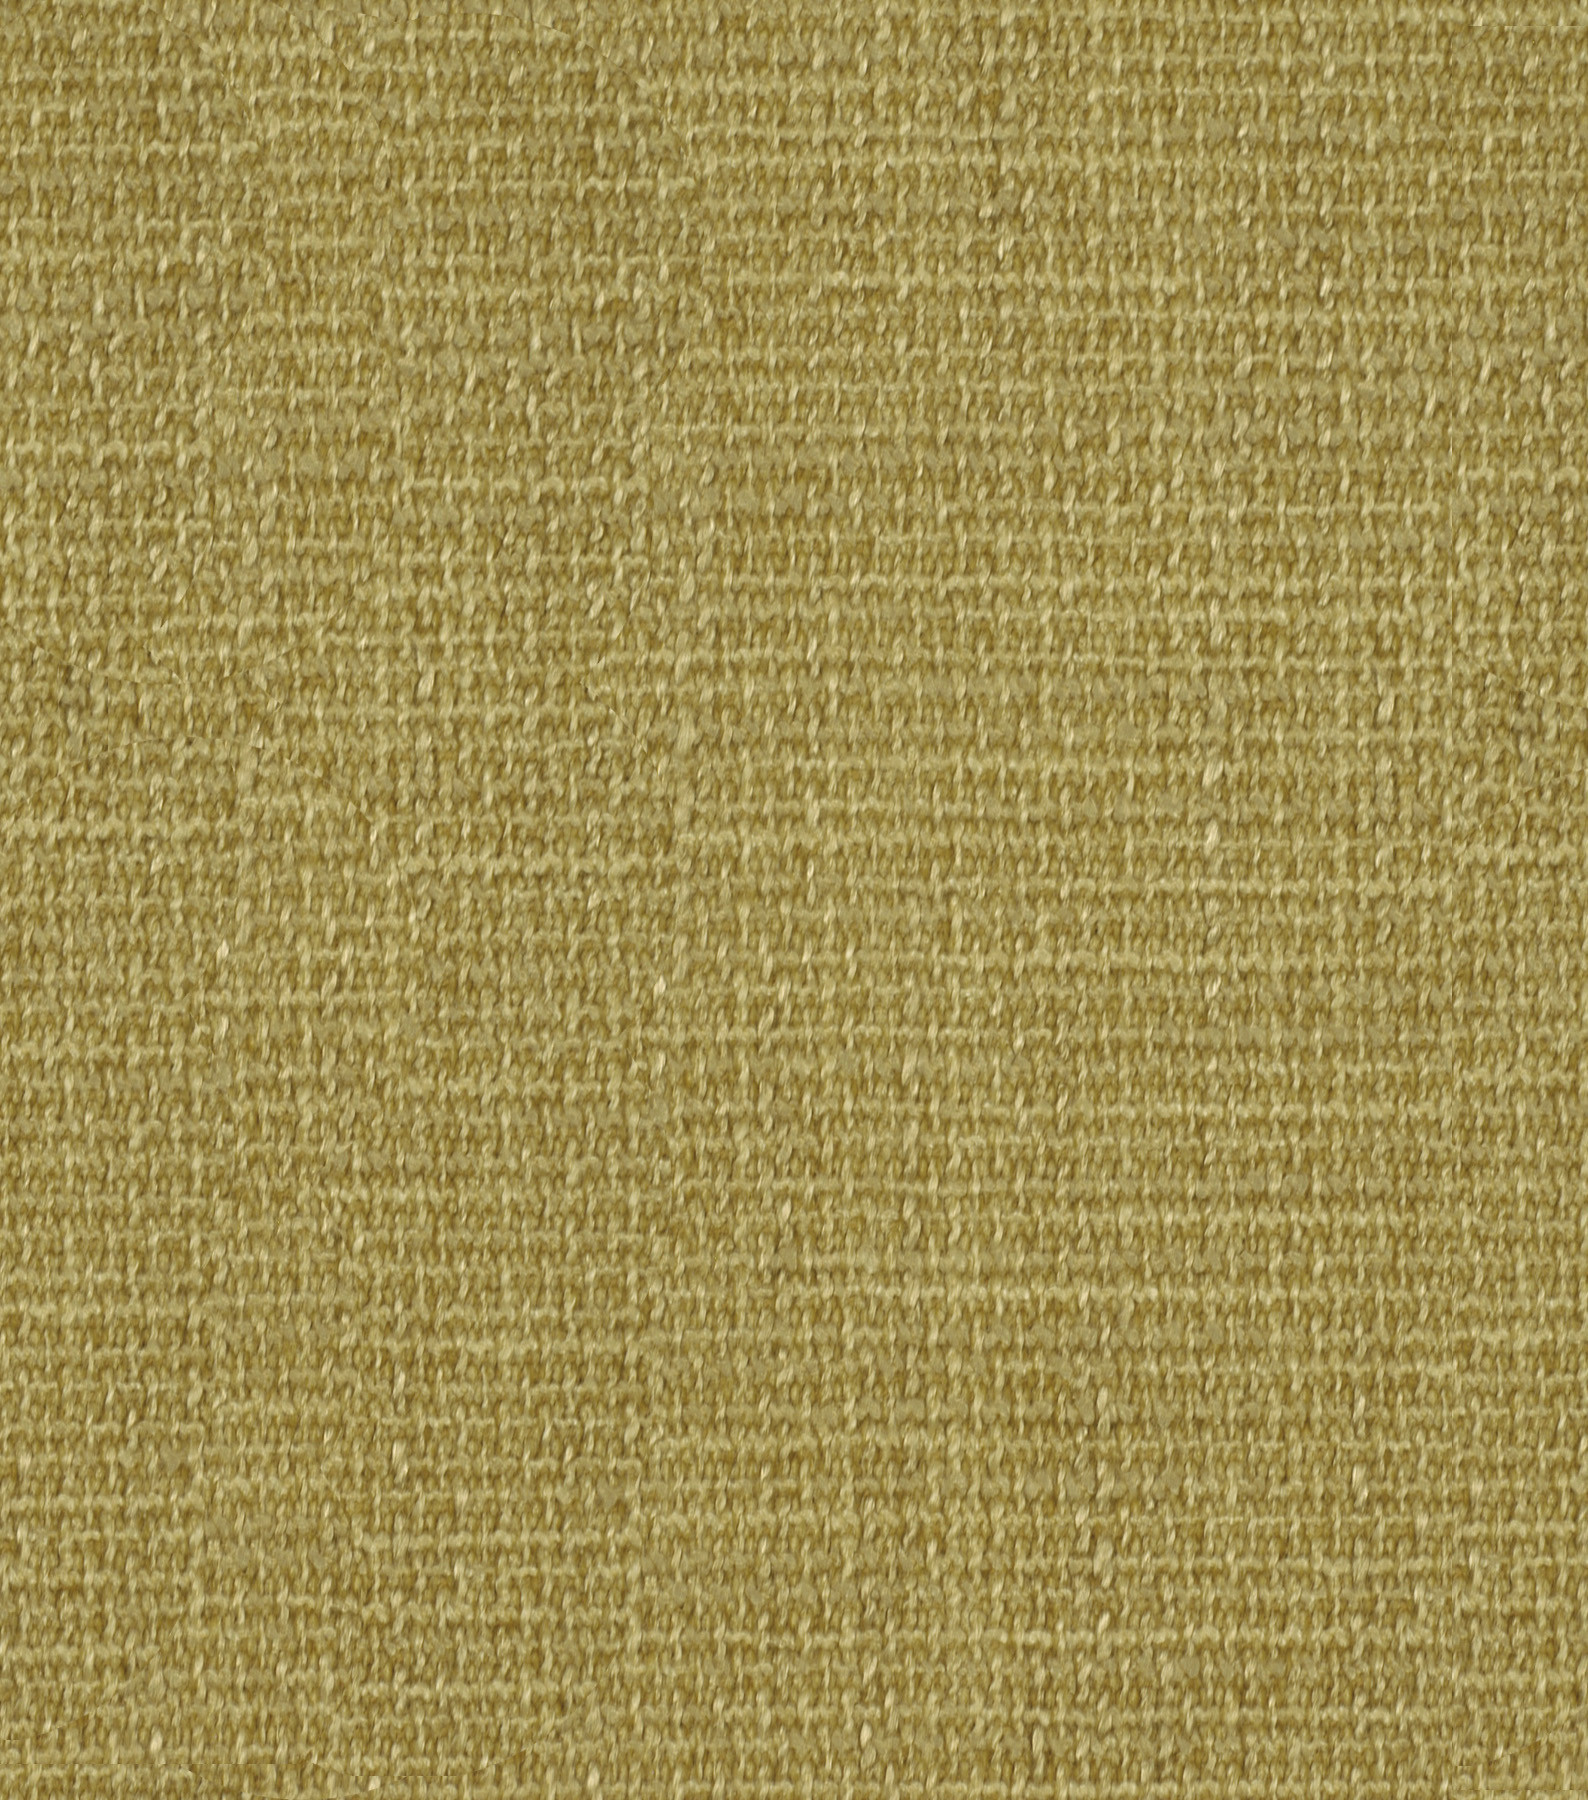 Home Decor 8\u0022x8\u0022 Fabric Swatch-Signature Series Tex Weave Gold